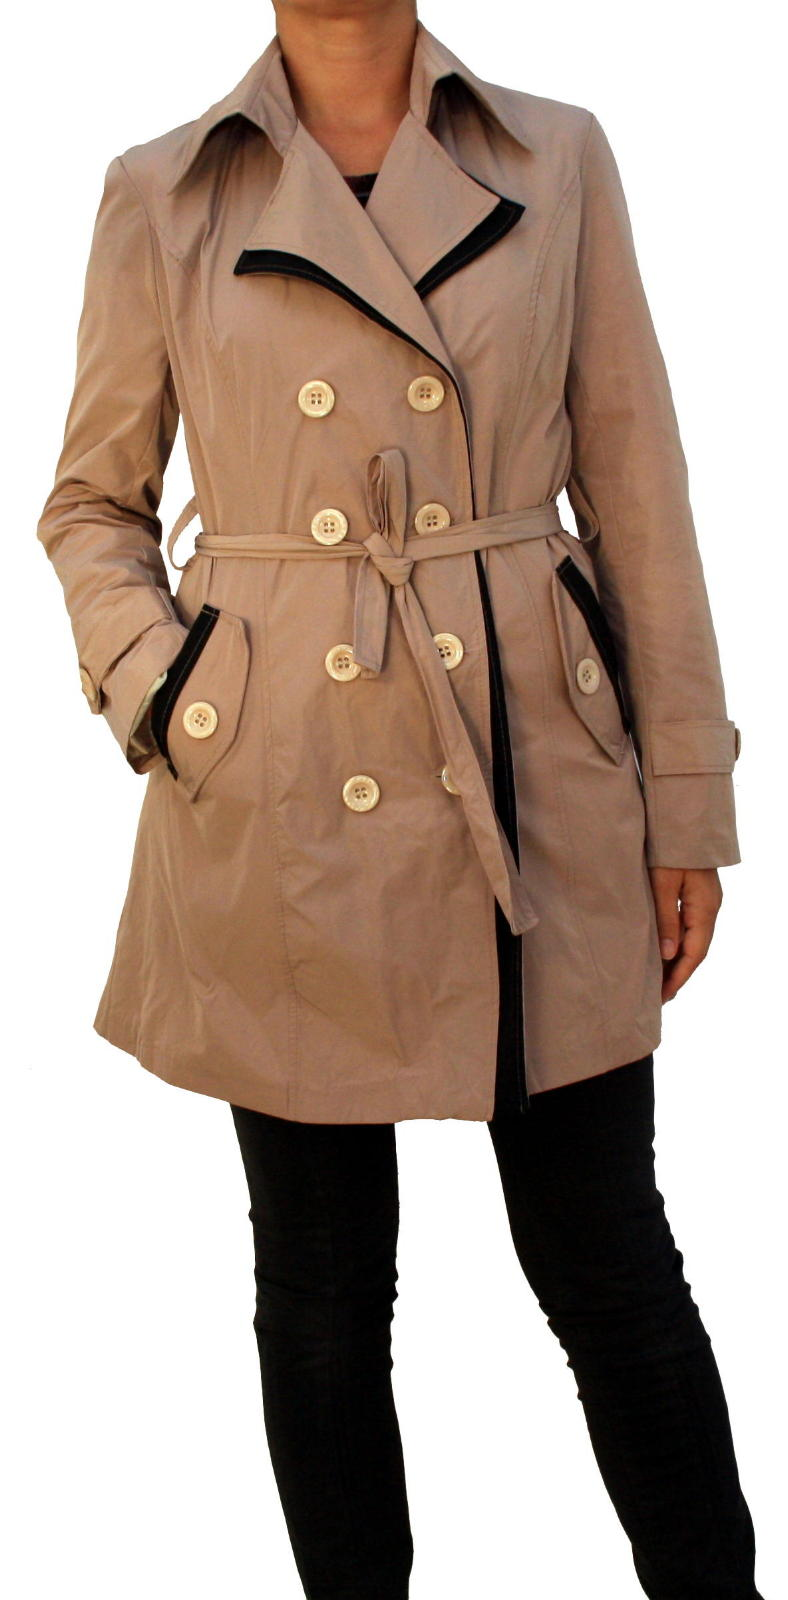 damen trenchcoat jacke mantel s m l xl g rtel zweireihig beige braun schwarz ebay. Black Bedroom Furniture Sets. Home Design Ideas